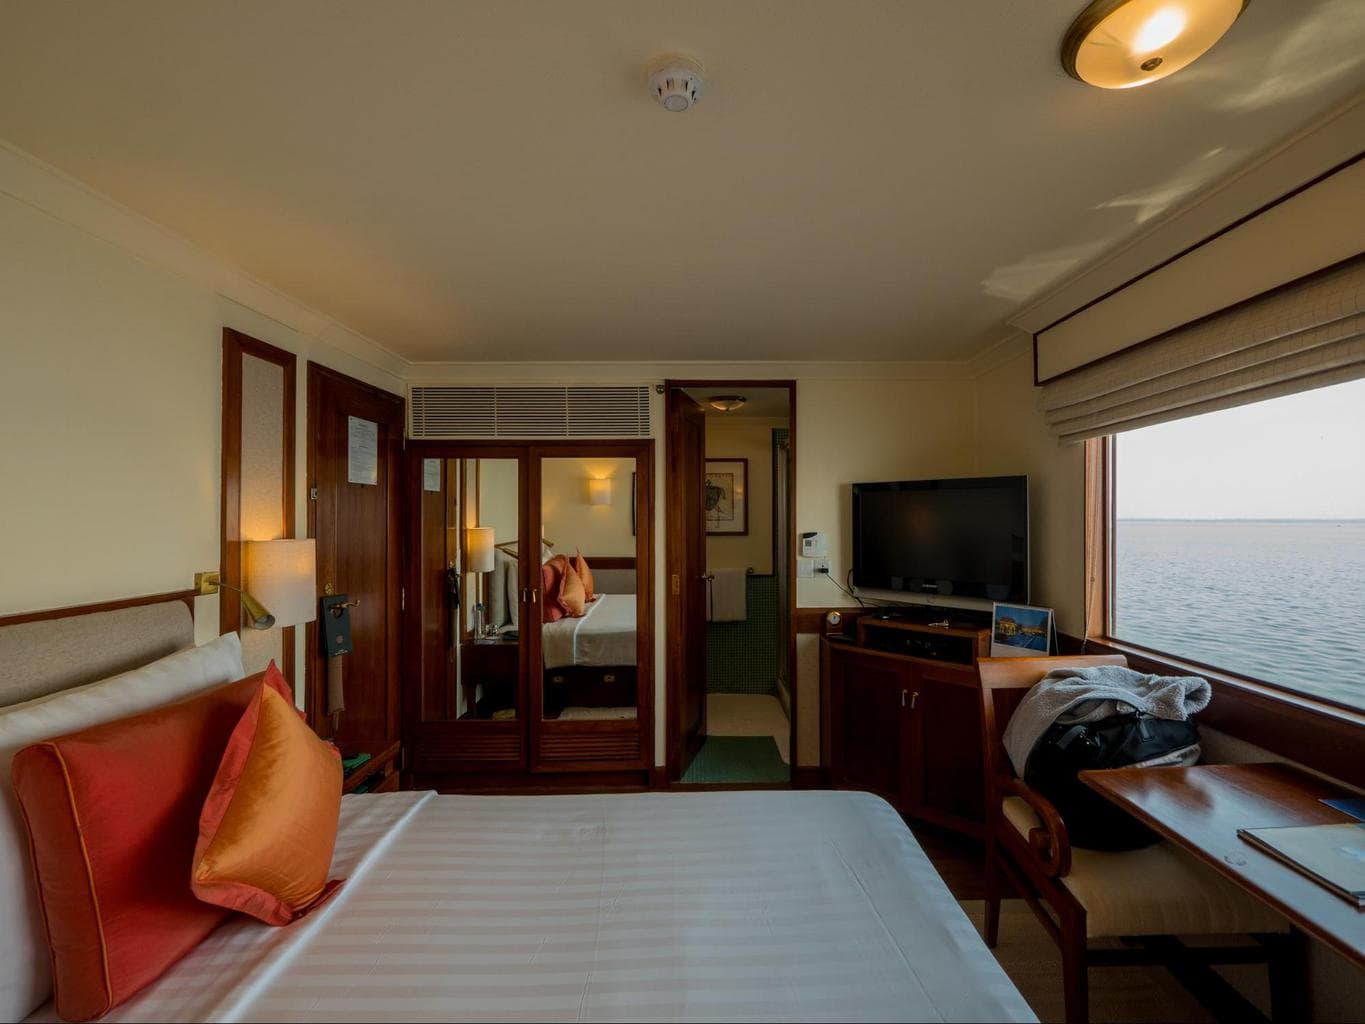 The cabins onboard The Oberoi Motor Vessel Vrinda